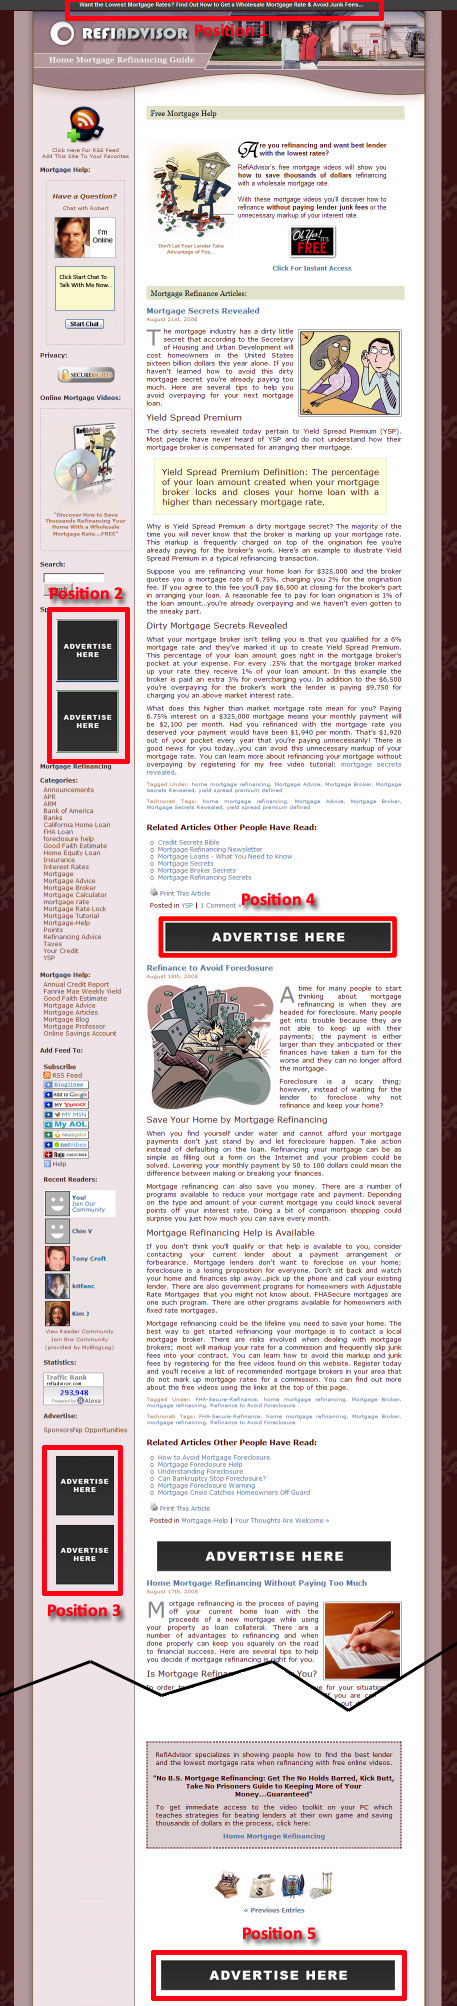 adpositions Mortgage Advertising on RefiAdvisor.com